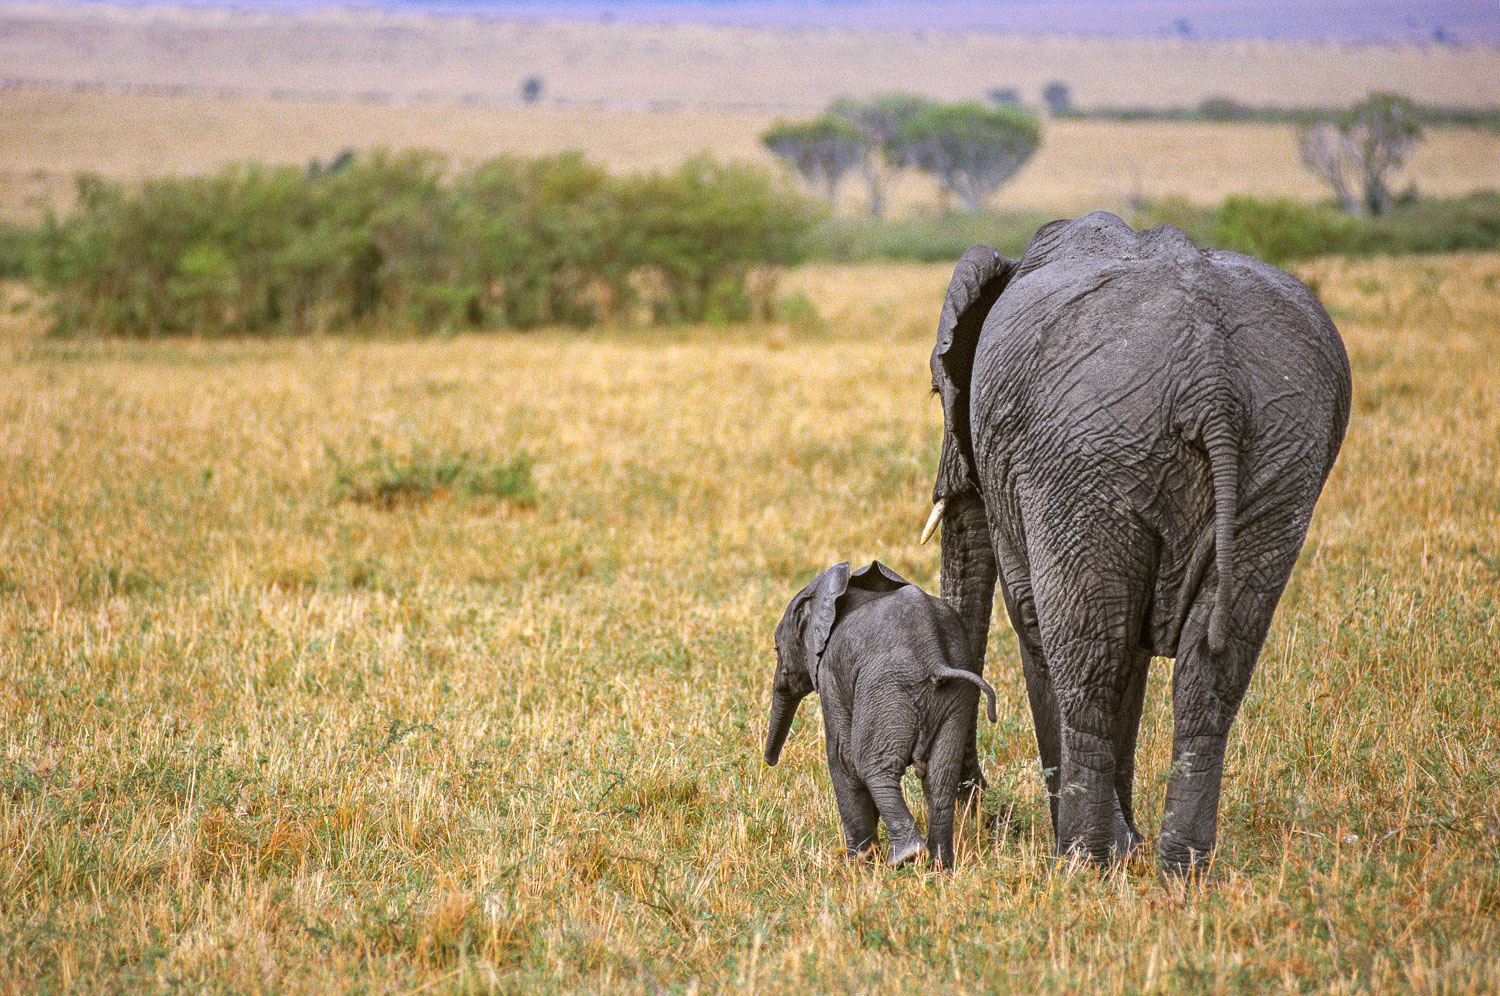 Mother and Baby Elephant in search of better grazing, Masai Mara